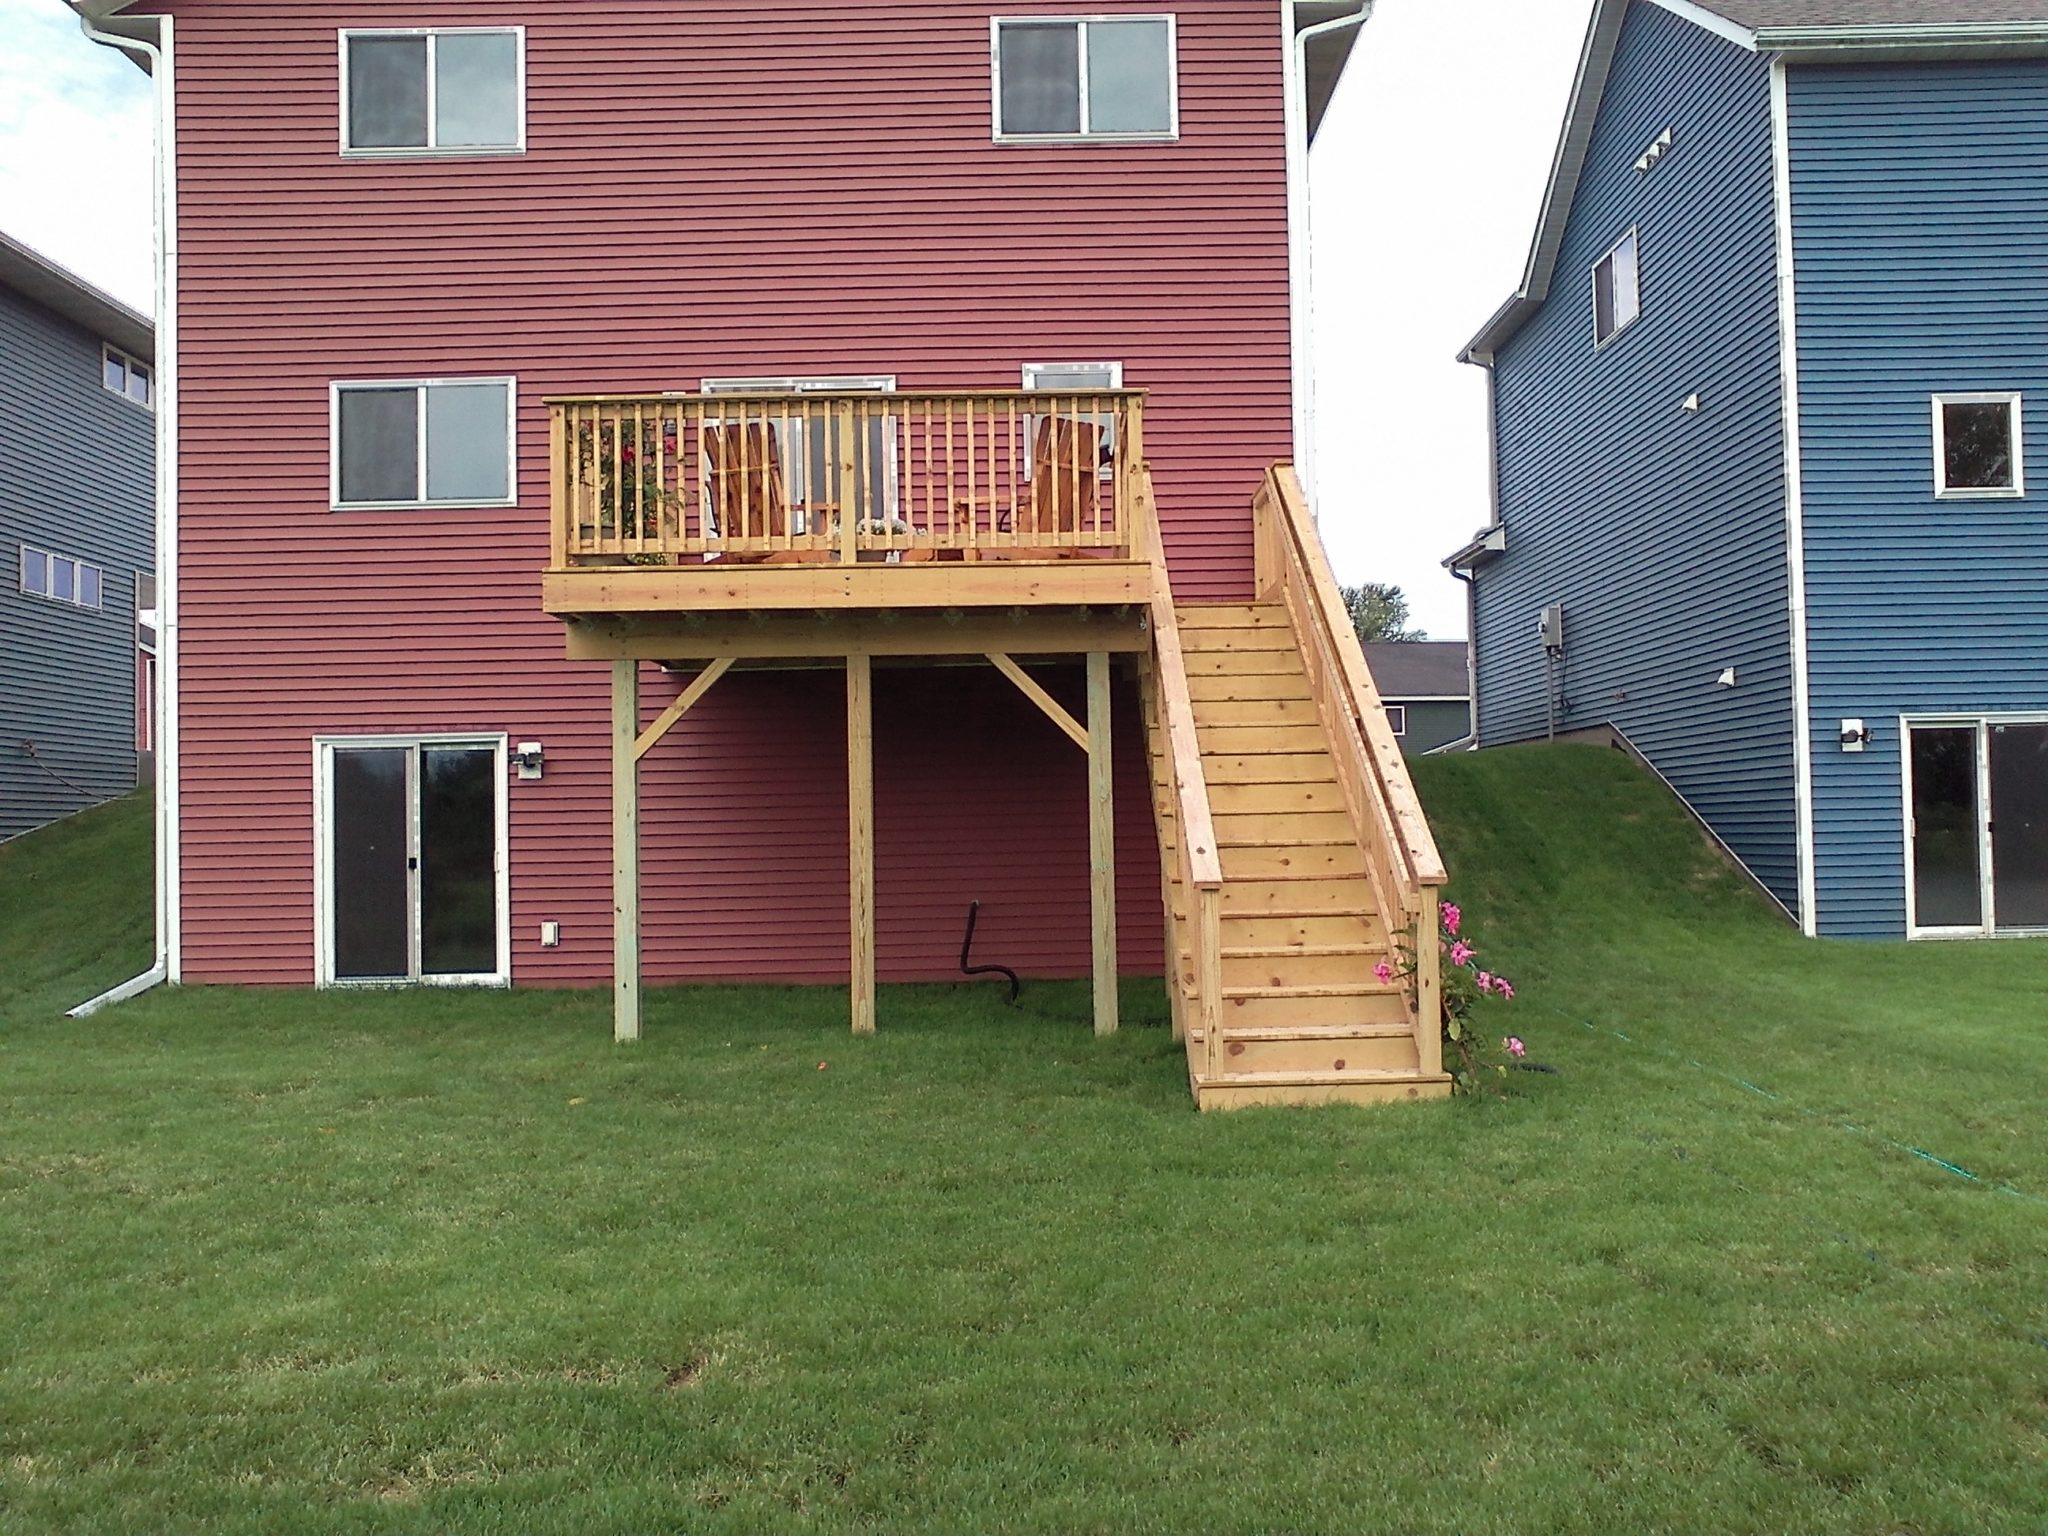 mankato-deck-and-railing-113406